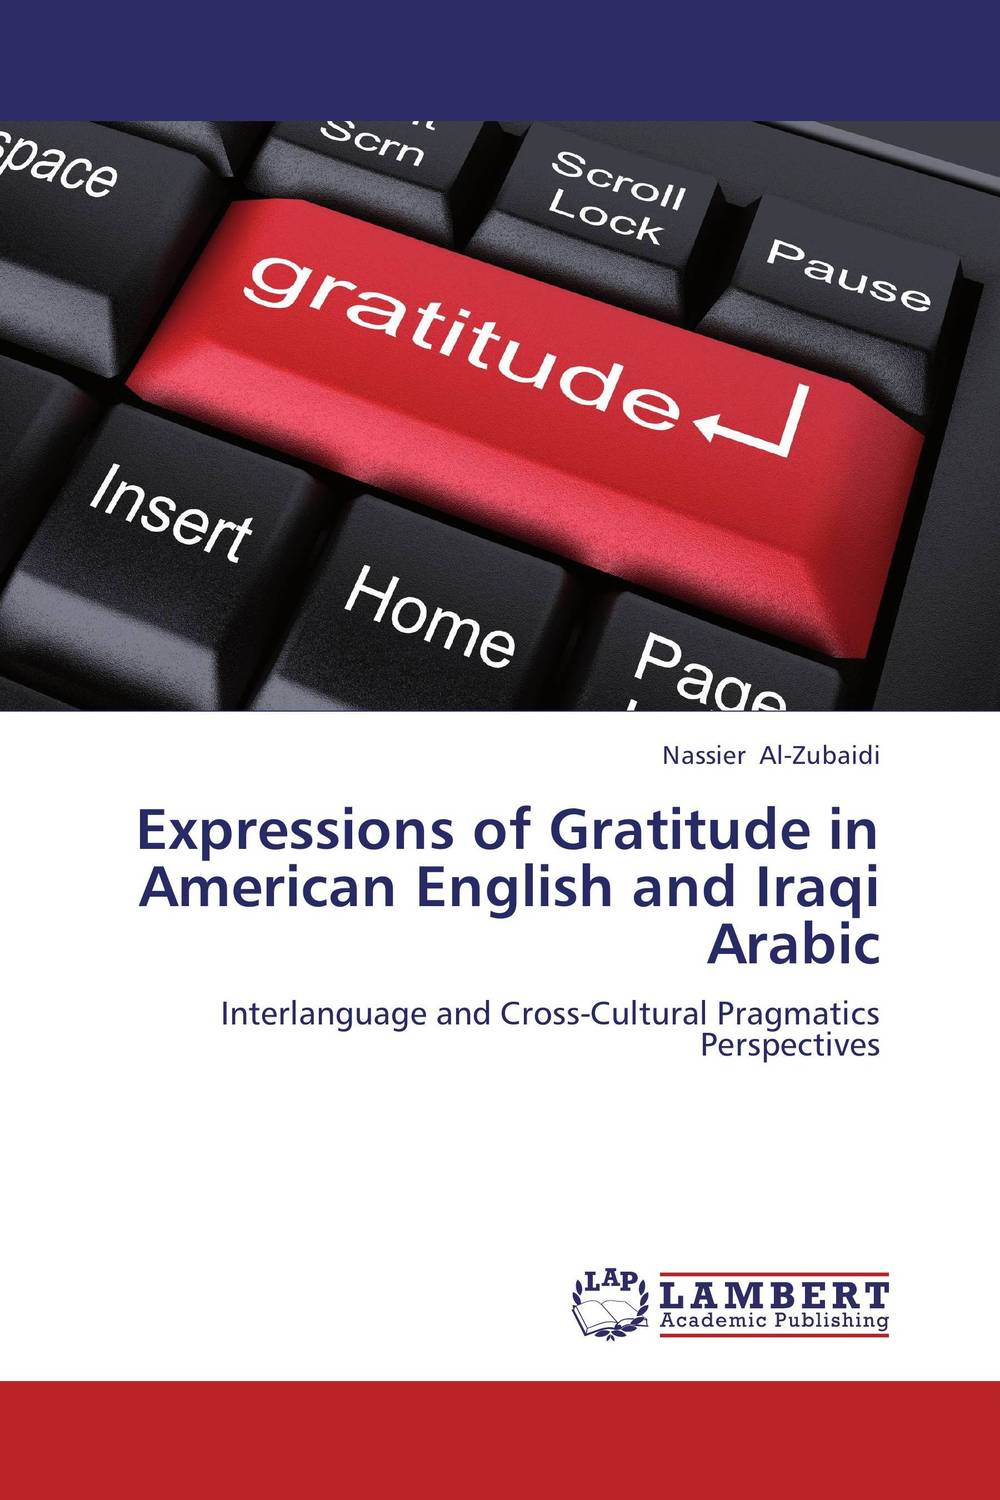 Expressions of Gratitude in American English and Iraqi Arabic dynamic assessment and interlanguage pragmatics